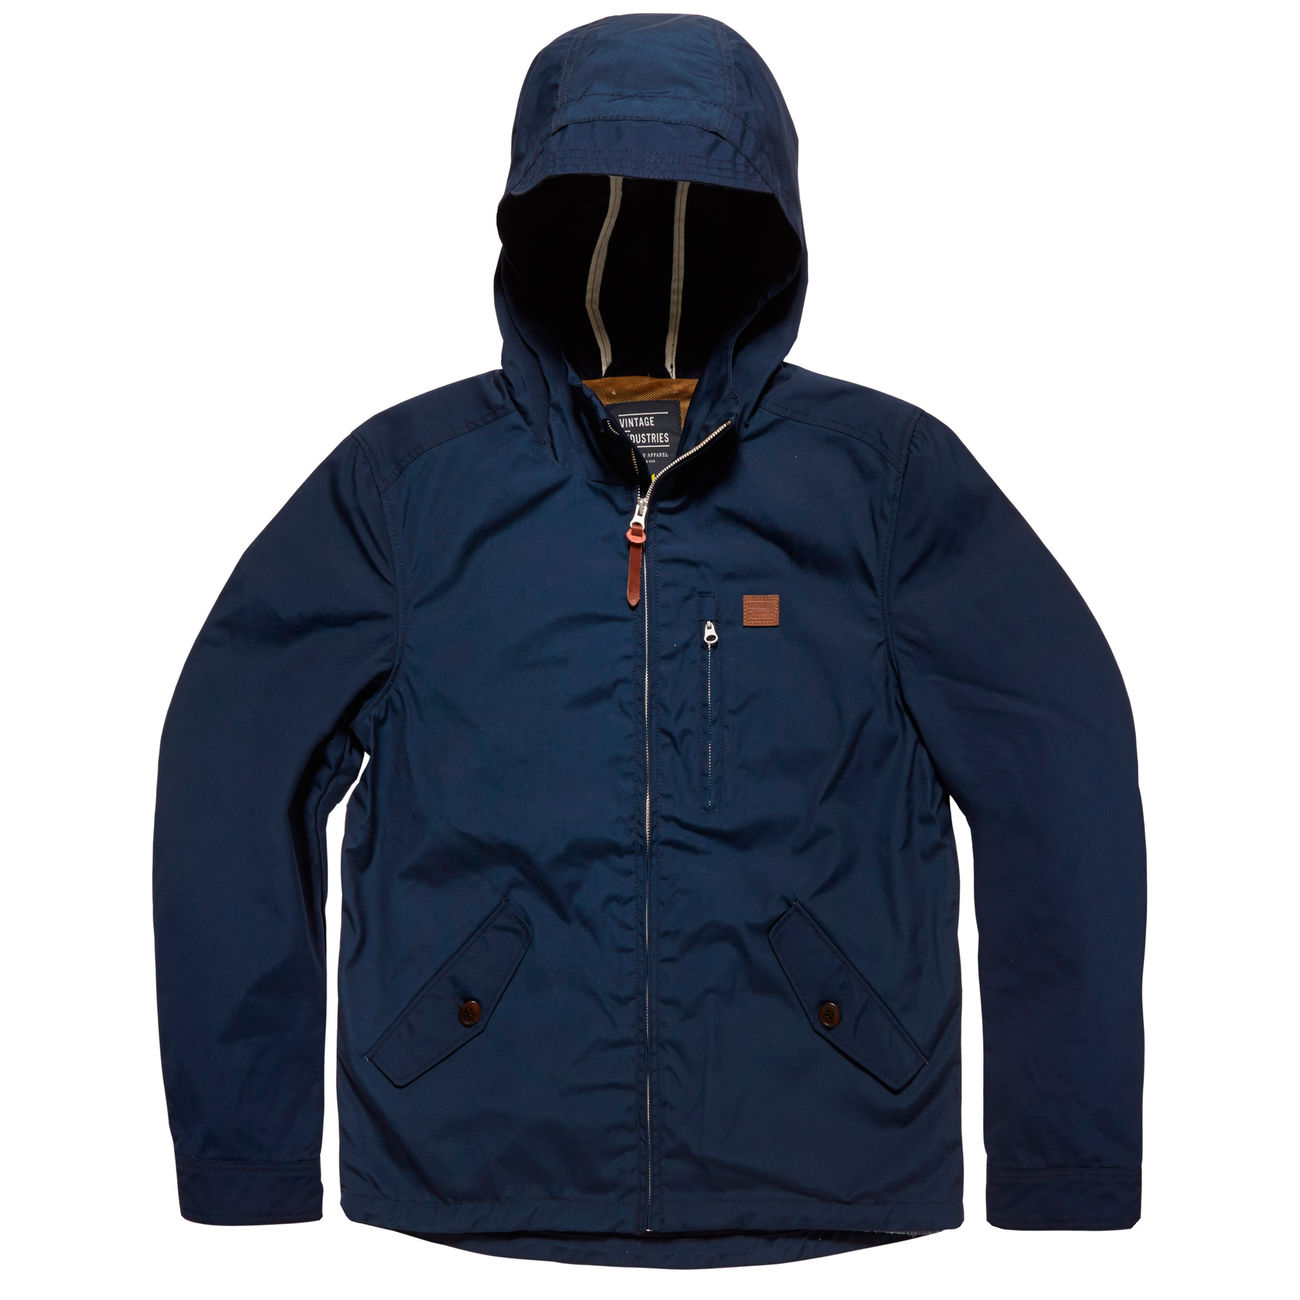 Vintage Industries Jacke Haven navy 0